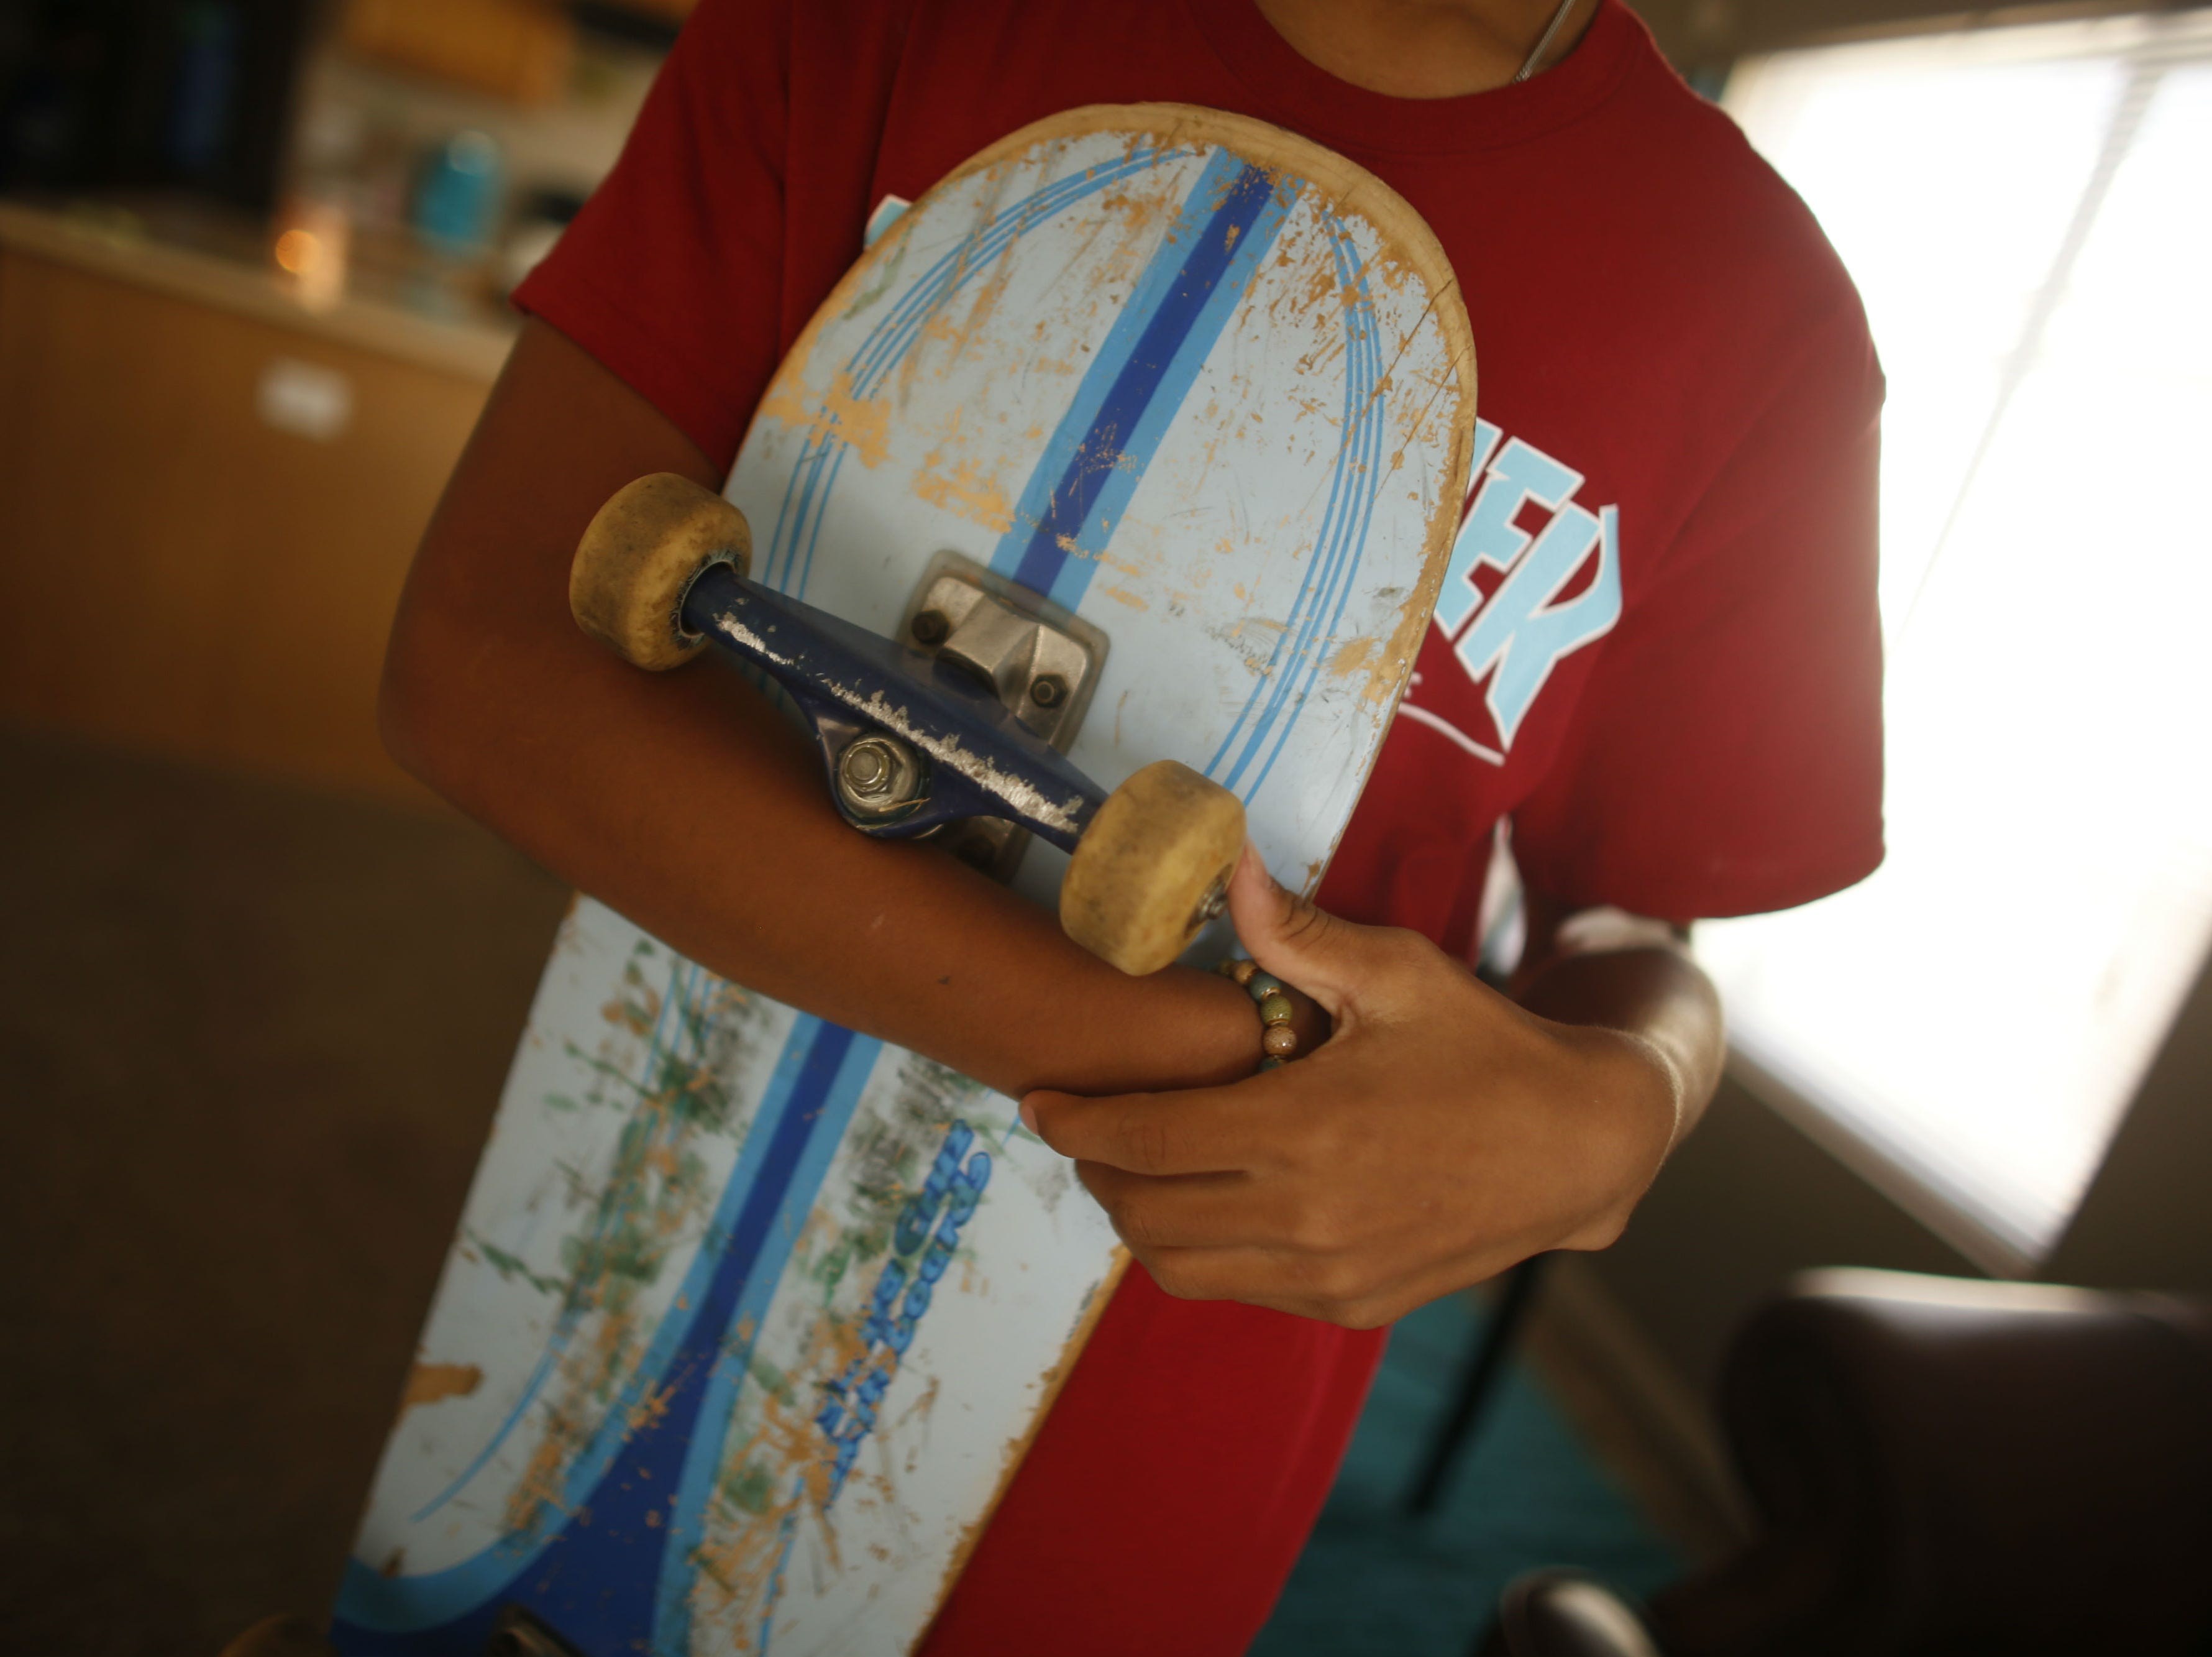 Josiah Wiedman holds his skateboard, which he believes helped protect him from the full force of the lightning, at their home in El Mirage on Aug. 16, 2018.